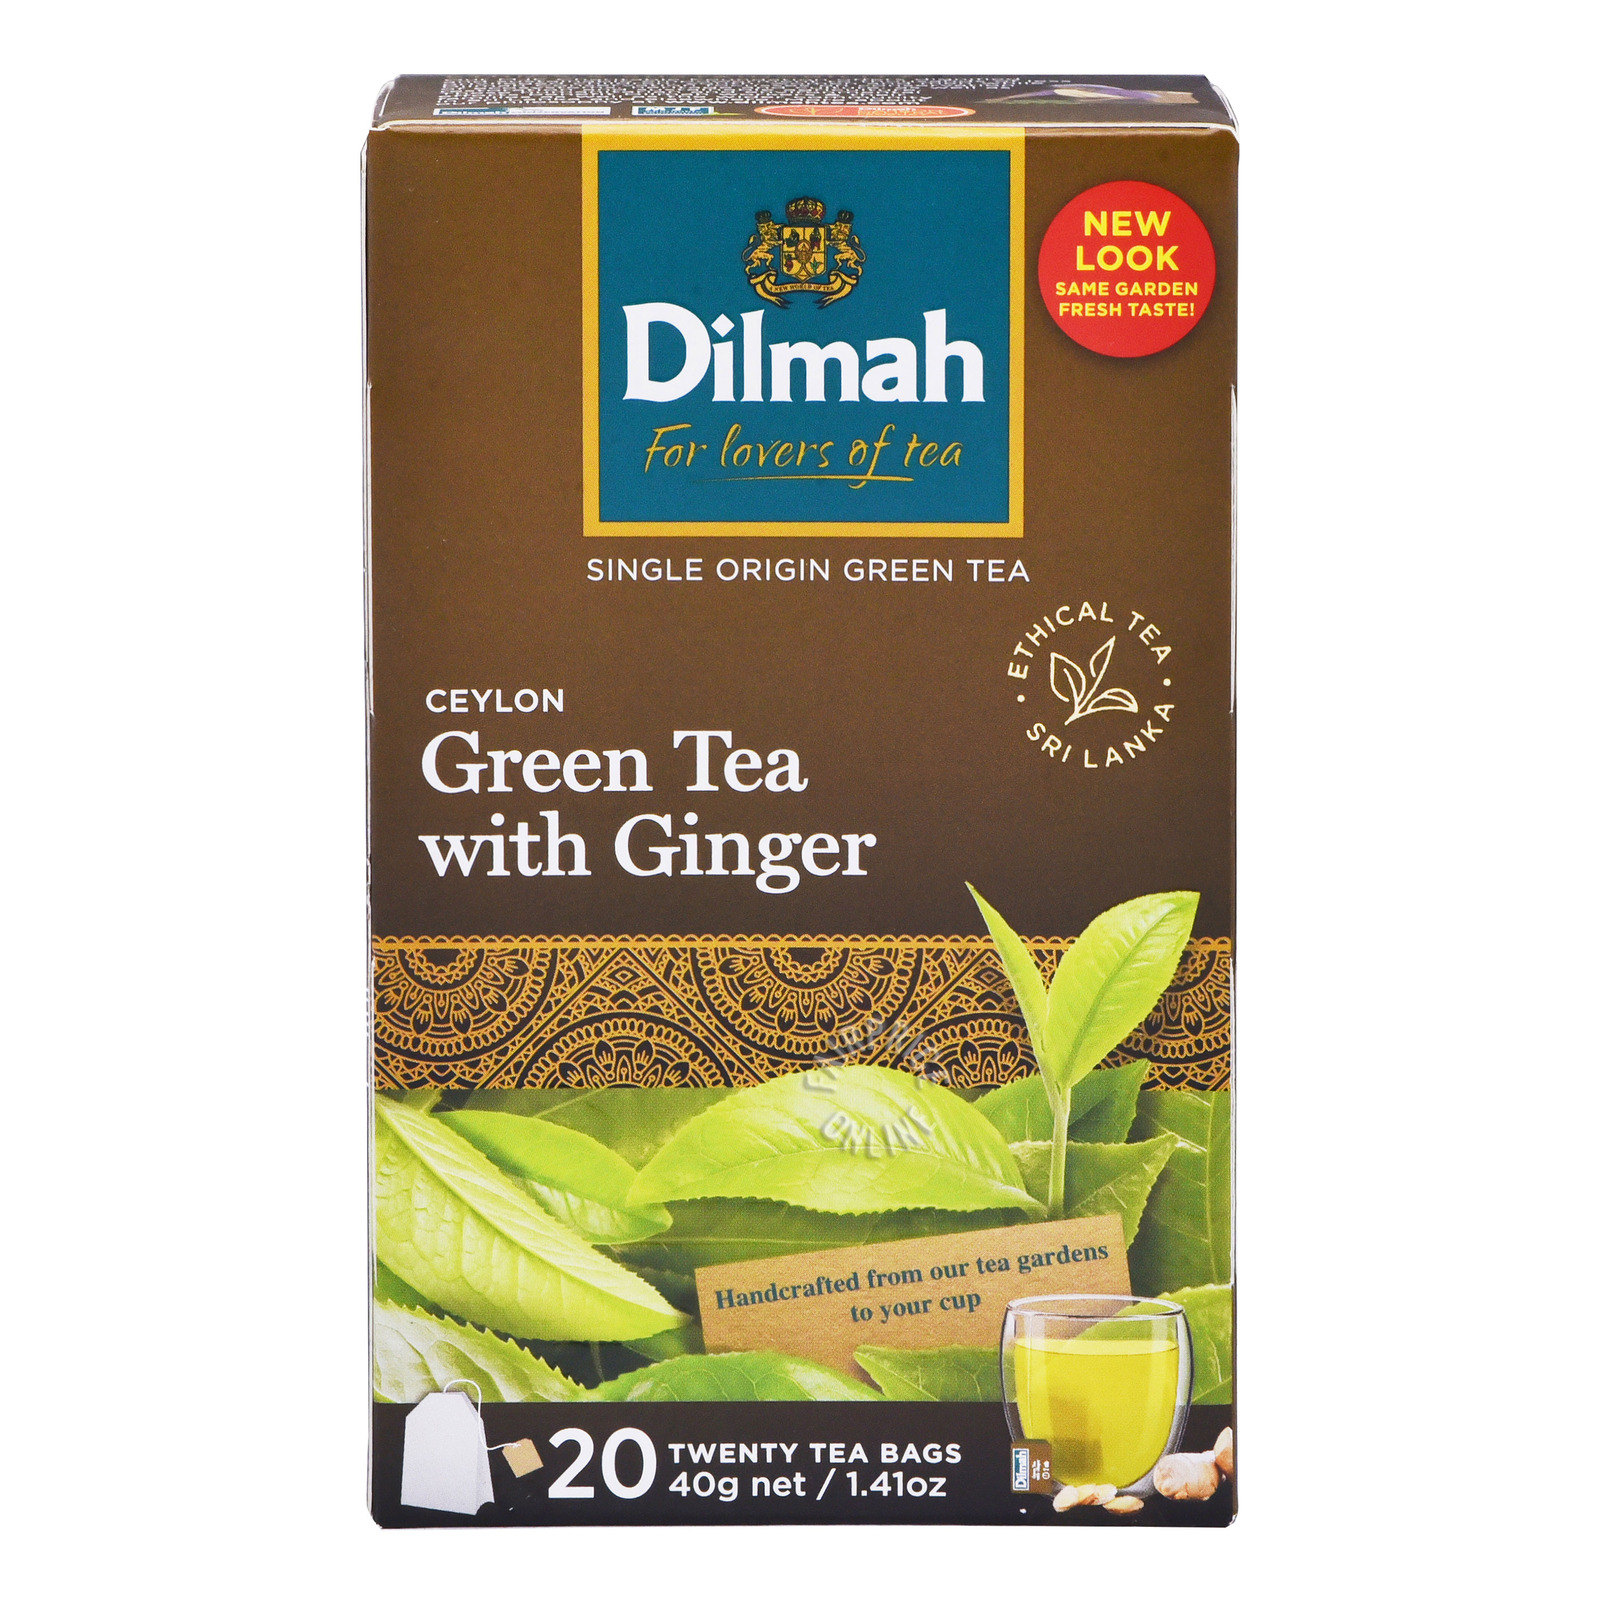 Dilmah Pure Ceylon Tea Bags - Green Tea with Ginger